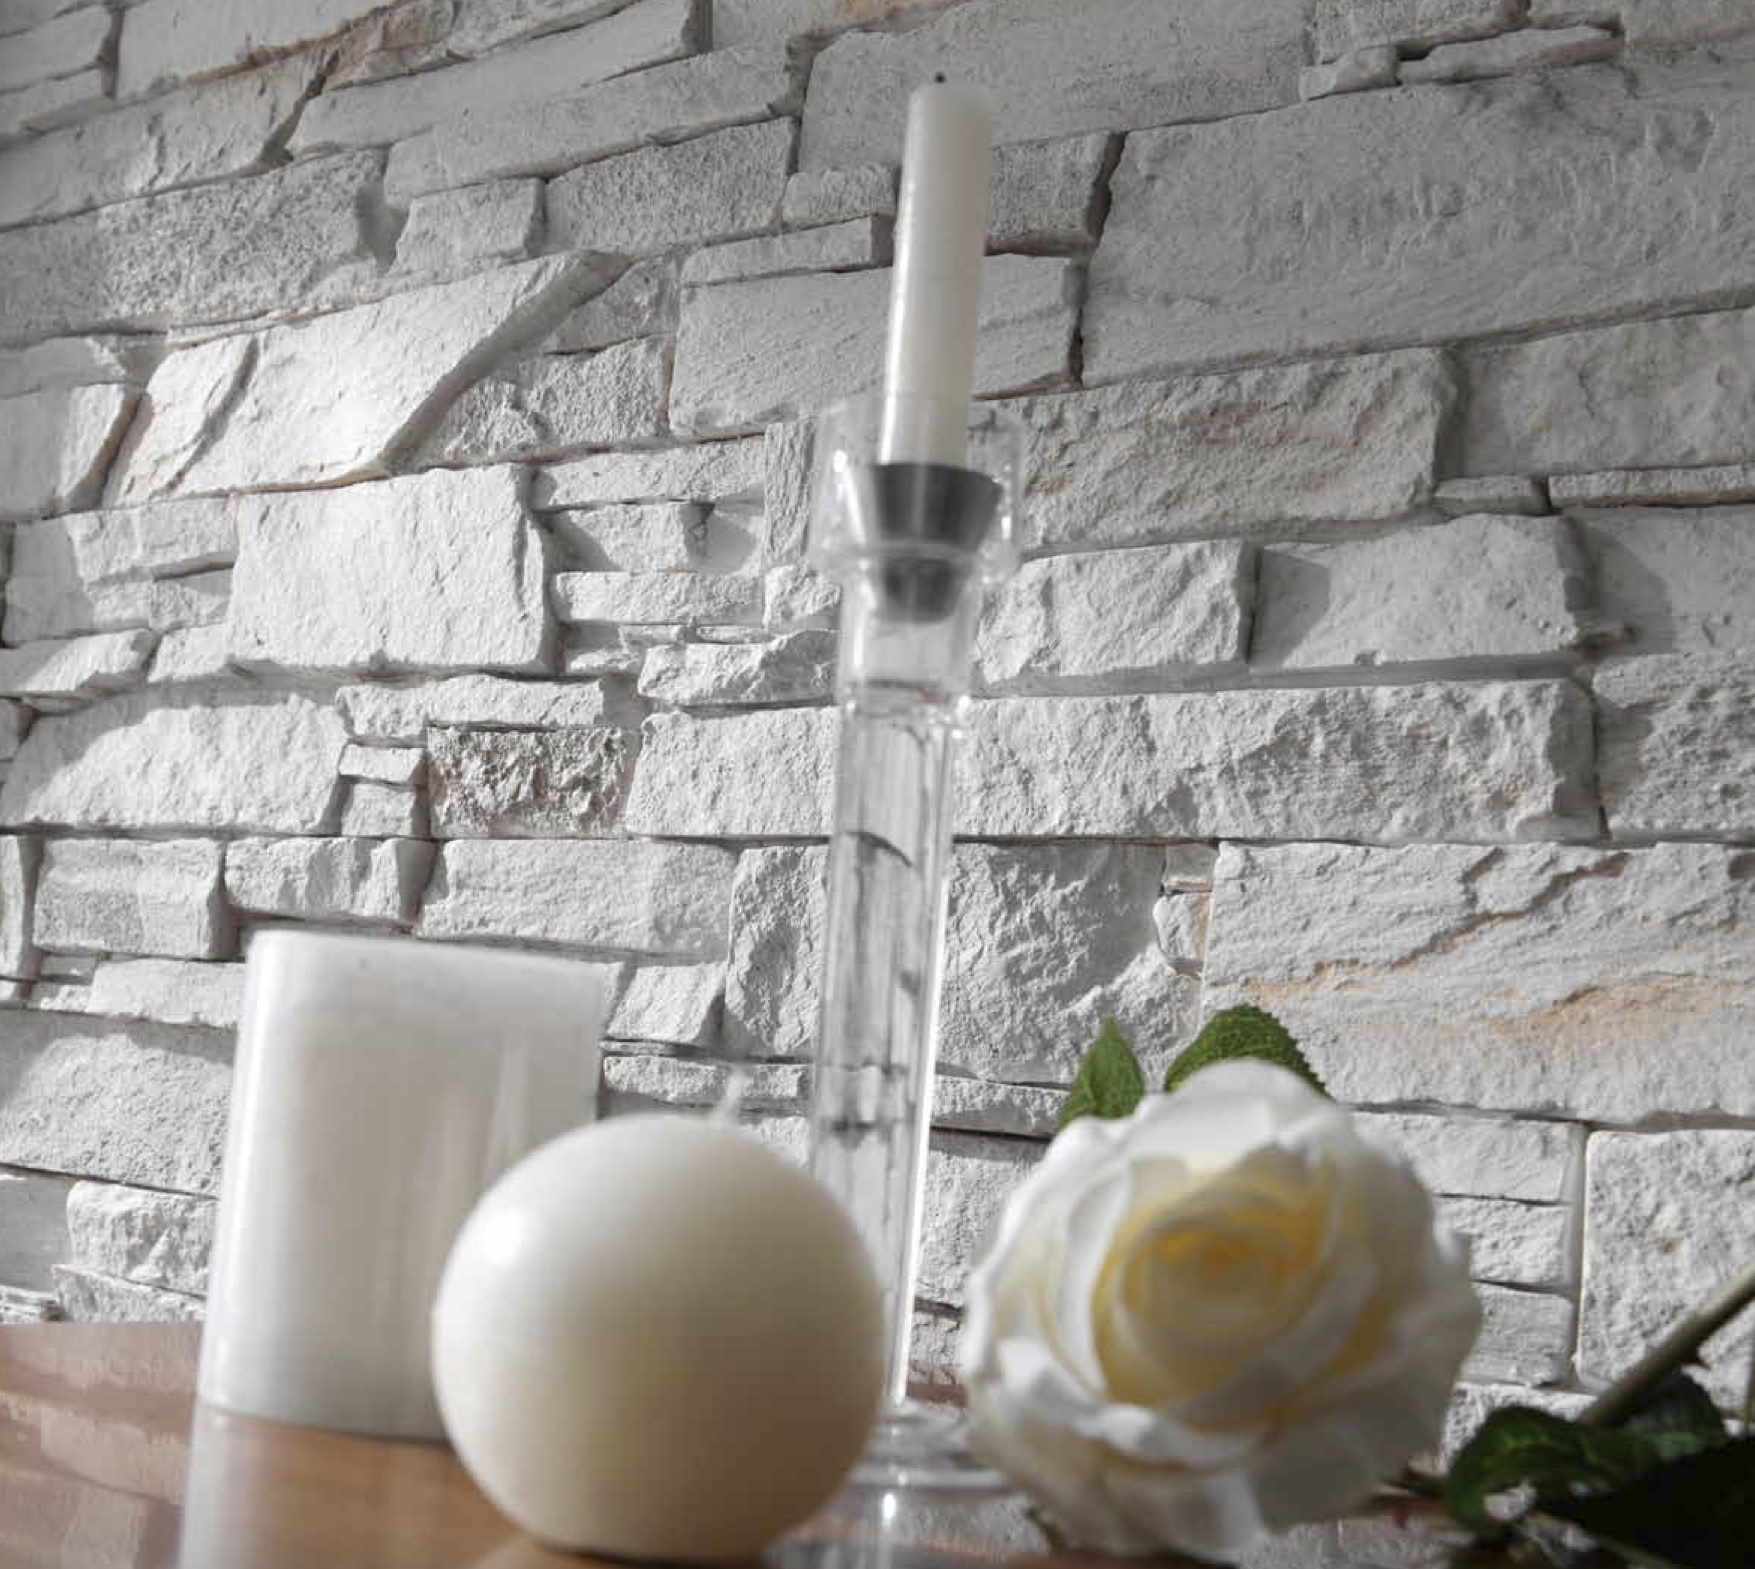 New dreamwall andes slate in italian white dreamwall dreamwall uk stock andes slate in italian white amipublicfo Image collections